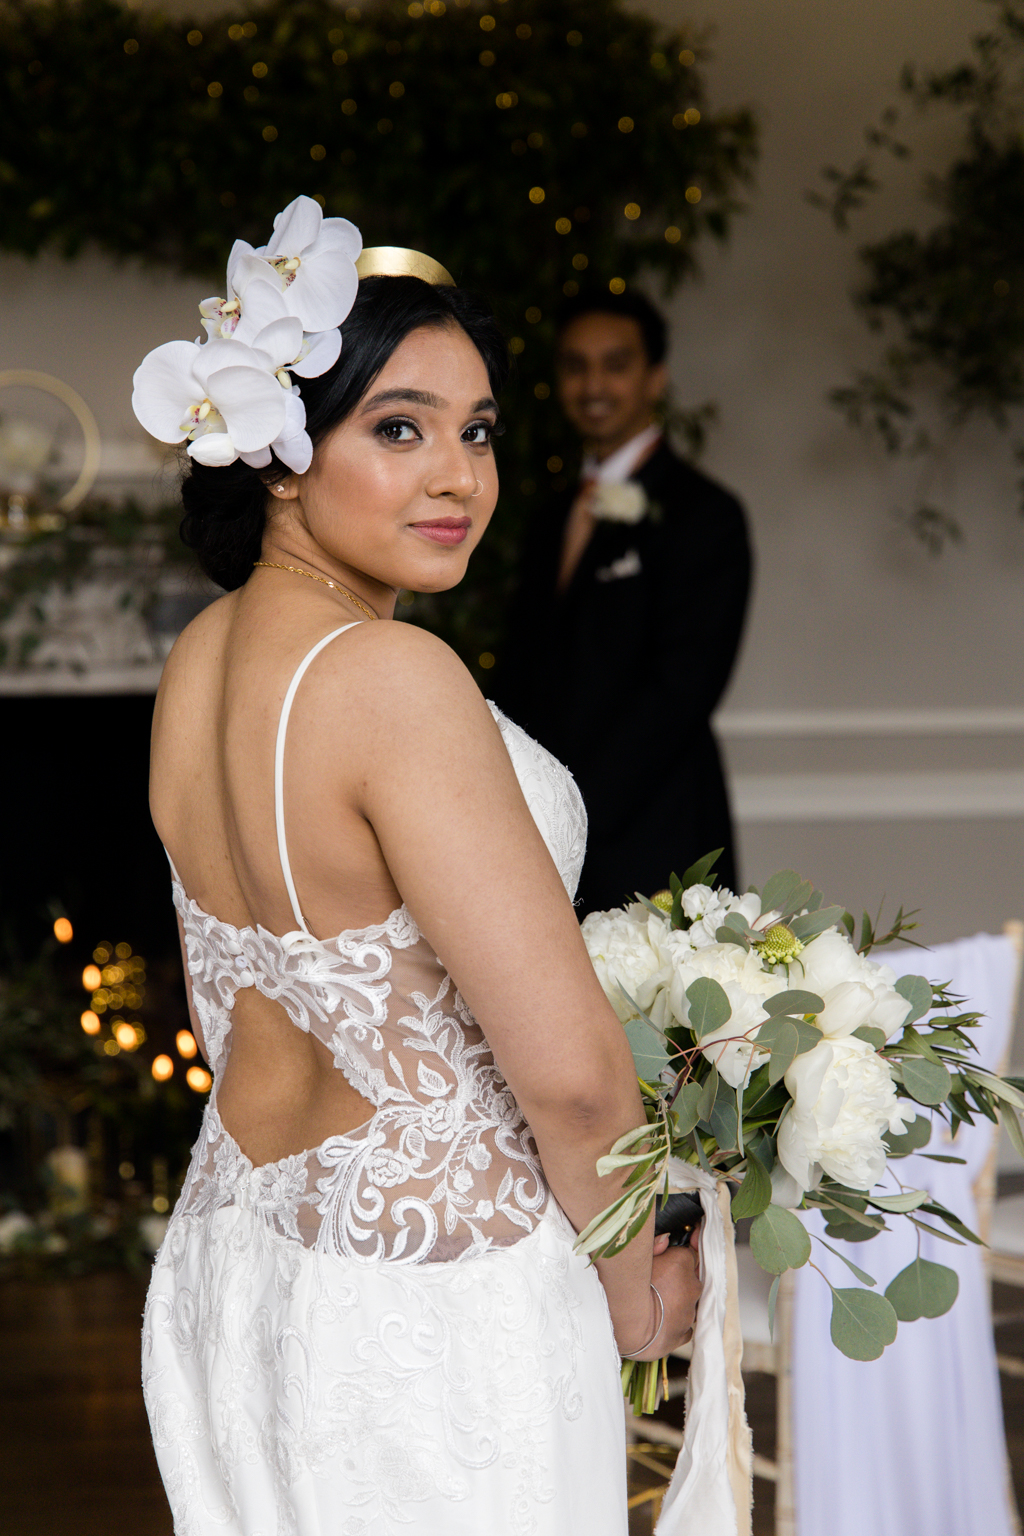 Wedding inspiration from Hale Park with Captured by Crissi